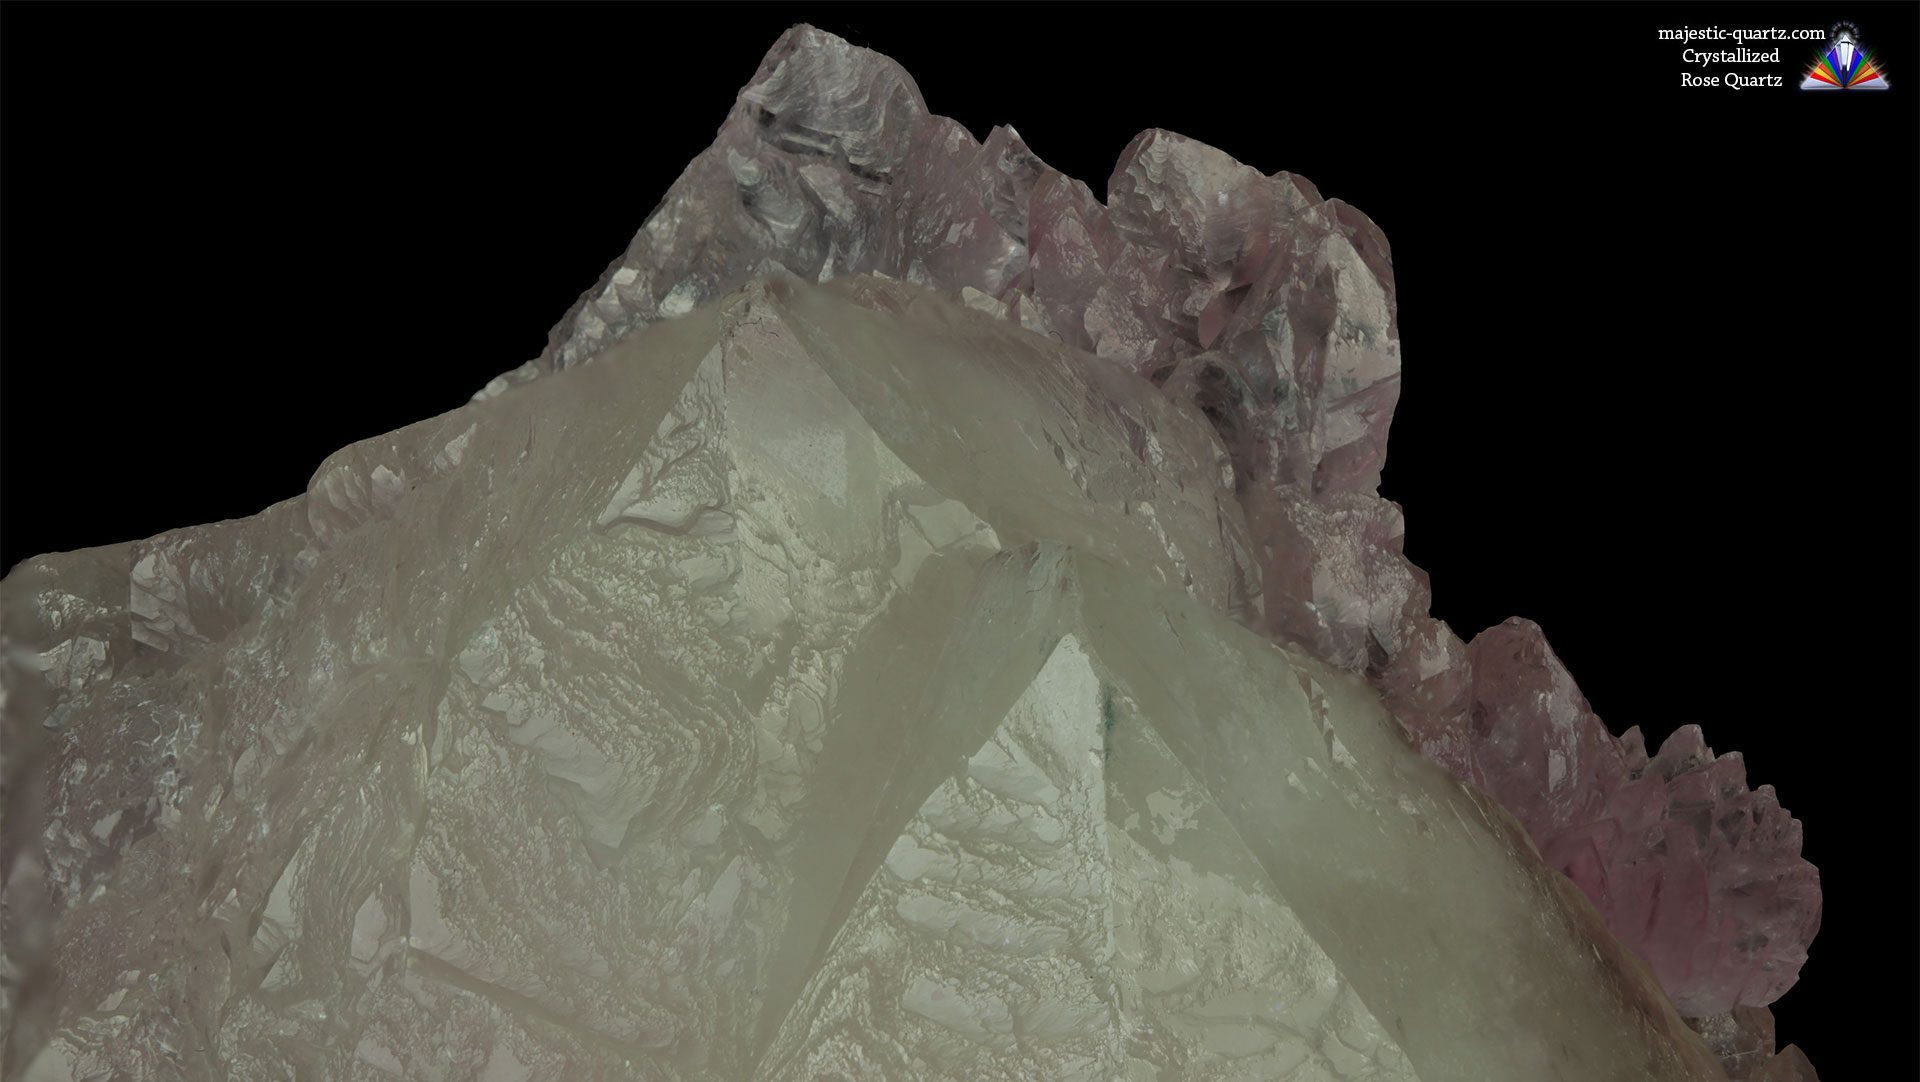 Crystallized Rose Quartz Crystal Specimen - Photograph by Anthony Bradford